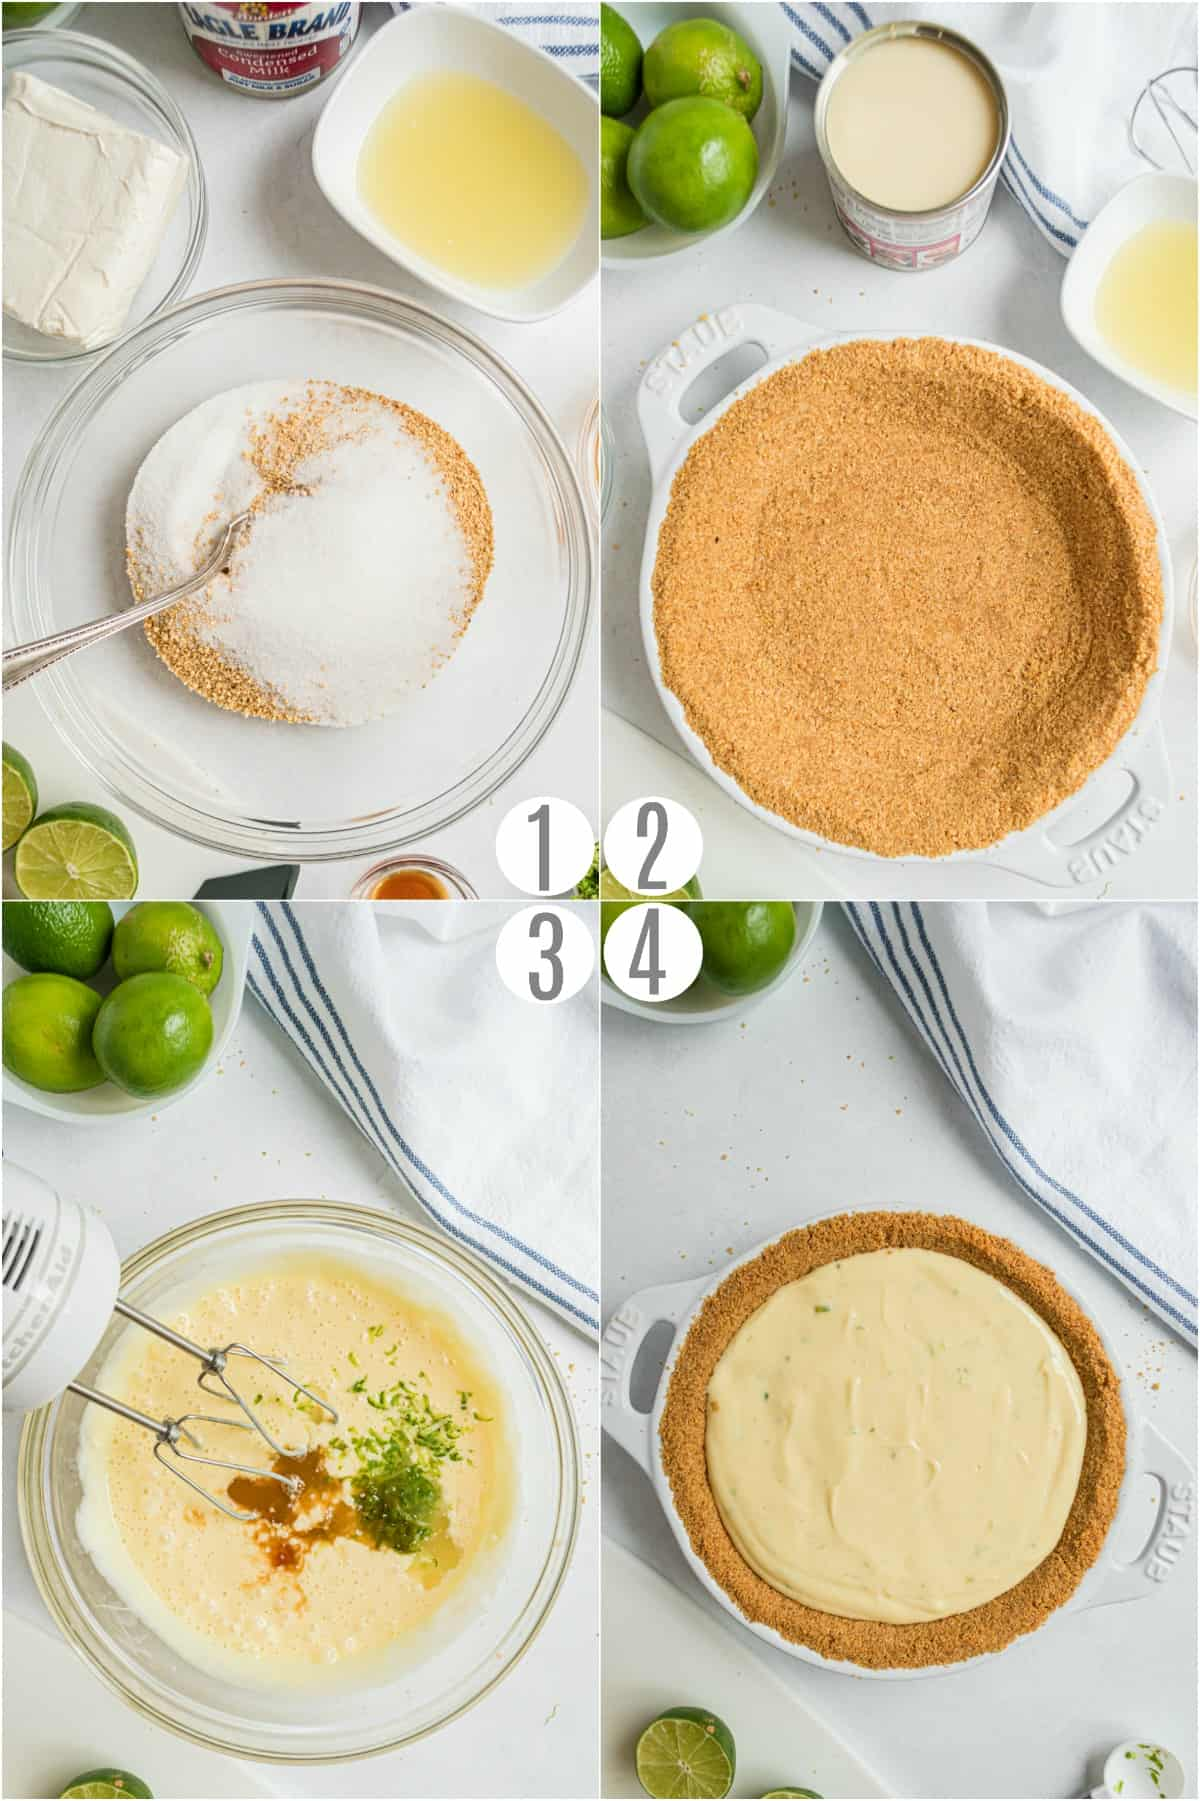 Step by step photos showing how to make key lime pie.